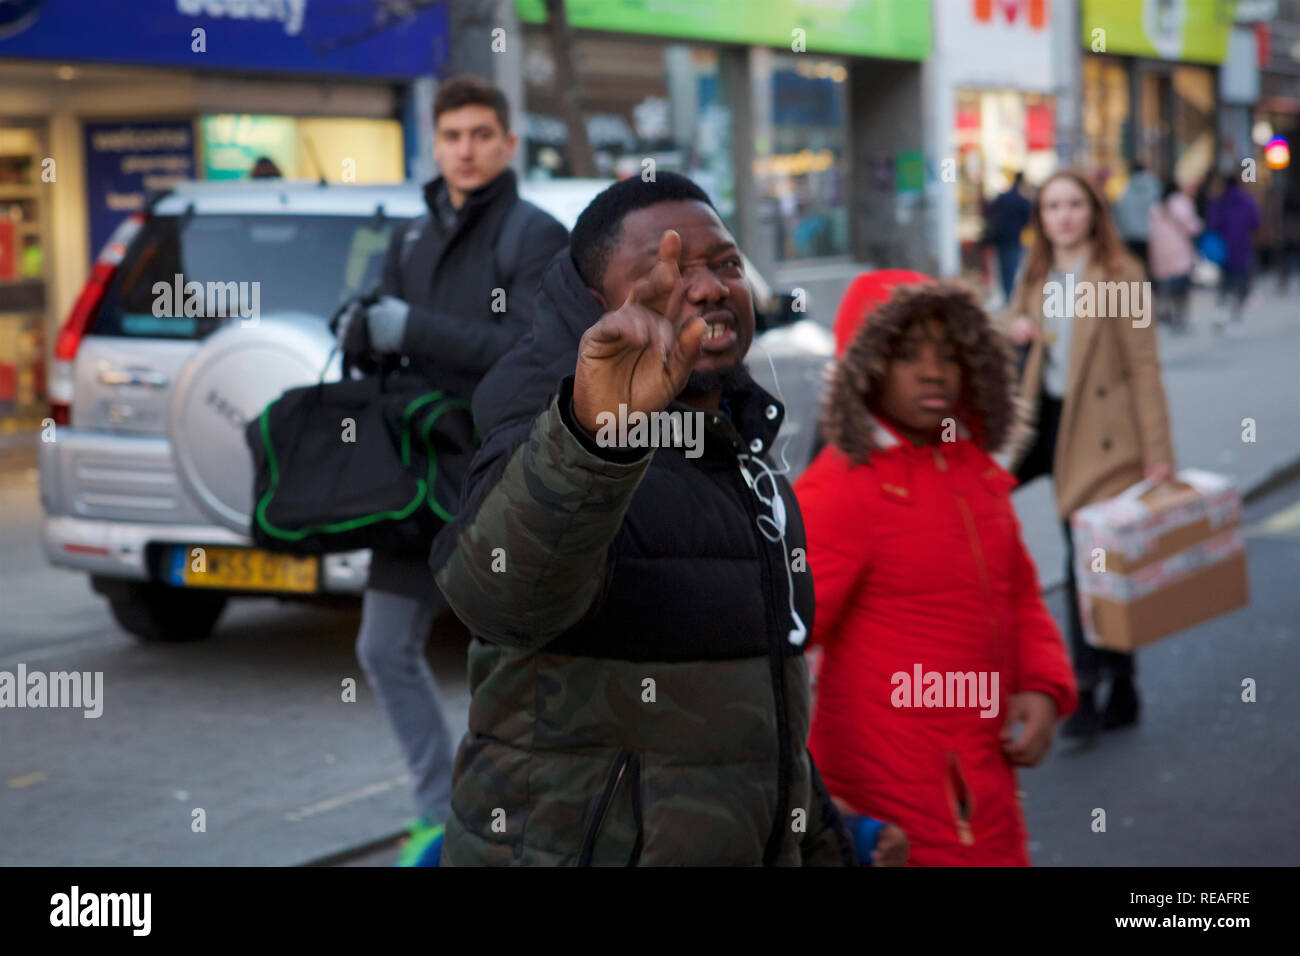 London, UK - Peckham. 20th January 2019. Violence breaks out on the streets of Peckham in south east London, between supporters of Nigerian presidential candidate Atiku Abubaker (72) and passing members of the  public who launch a tirade of abuse at the protesters before a skirmish breaks out. Credit: Iwala/Alamy Live News - Stock Image